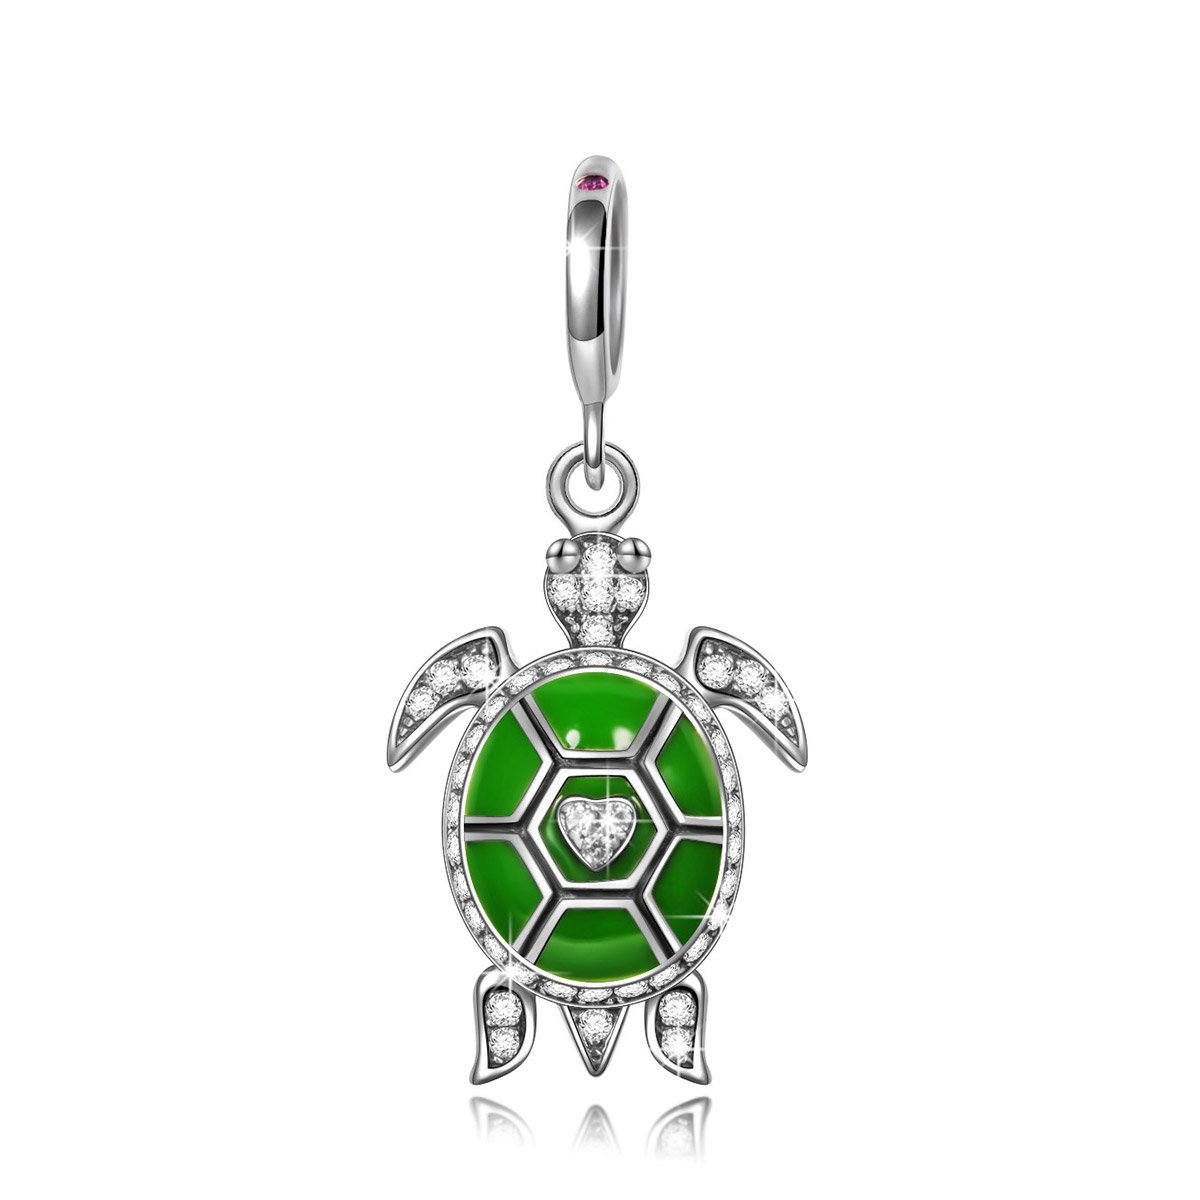 NINAQUEEN Turtle 925 Sterling Silver Green Dangle Pandöra Charms Pendant Charm Fit European Pandöra Bracelets Necklace Birthday for Her Teen Girls Kids Women Wife Daughter Sisters